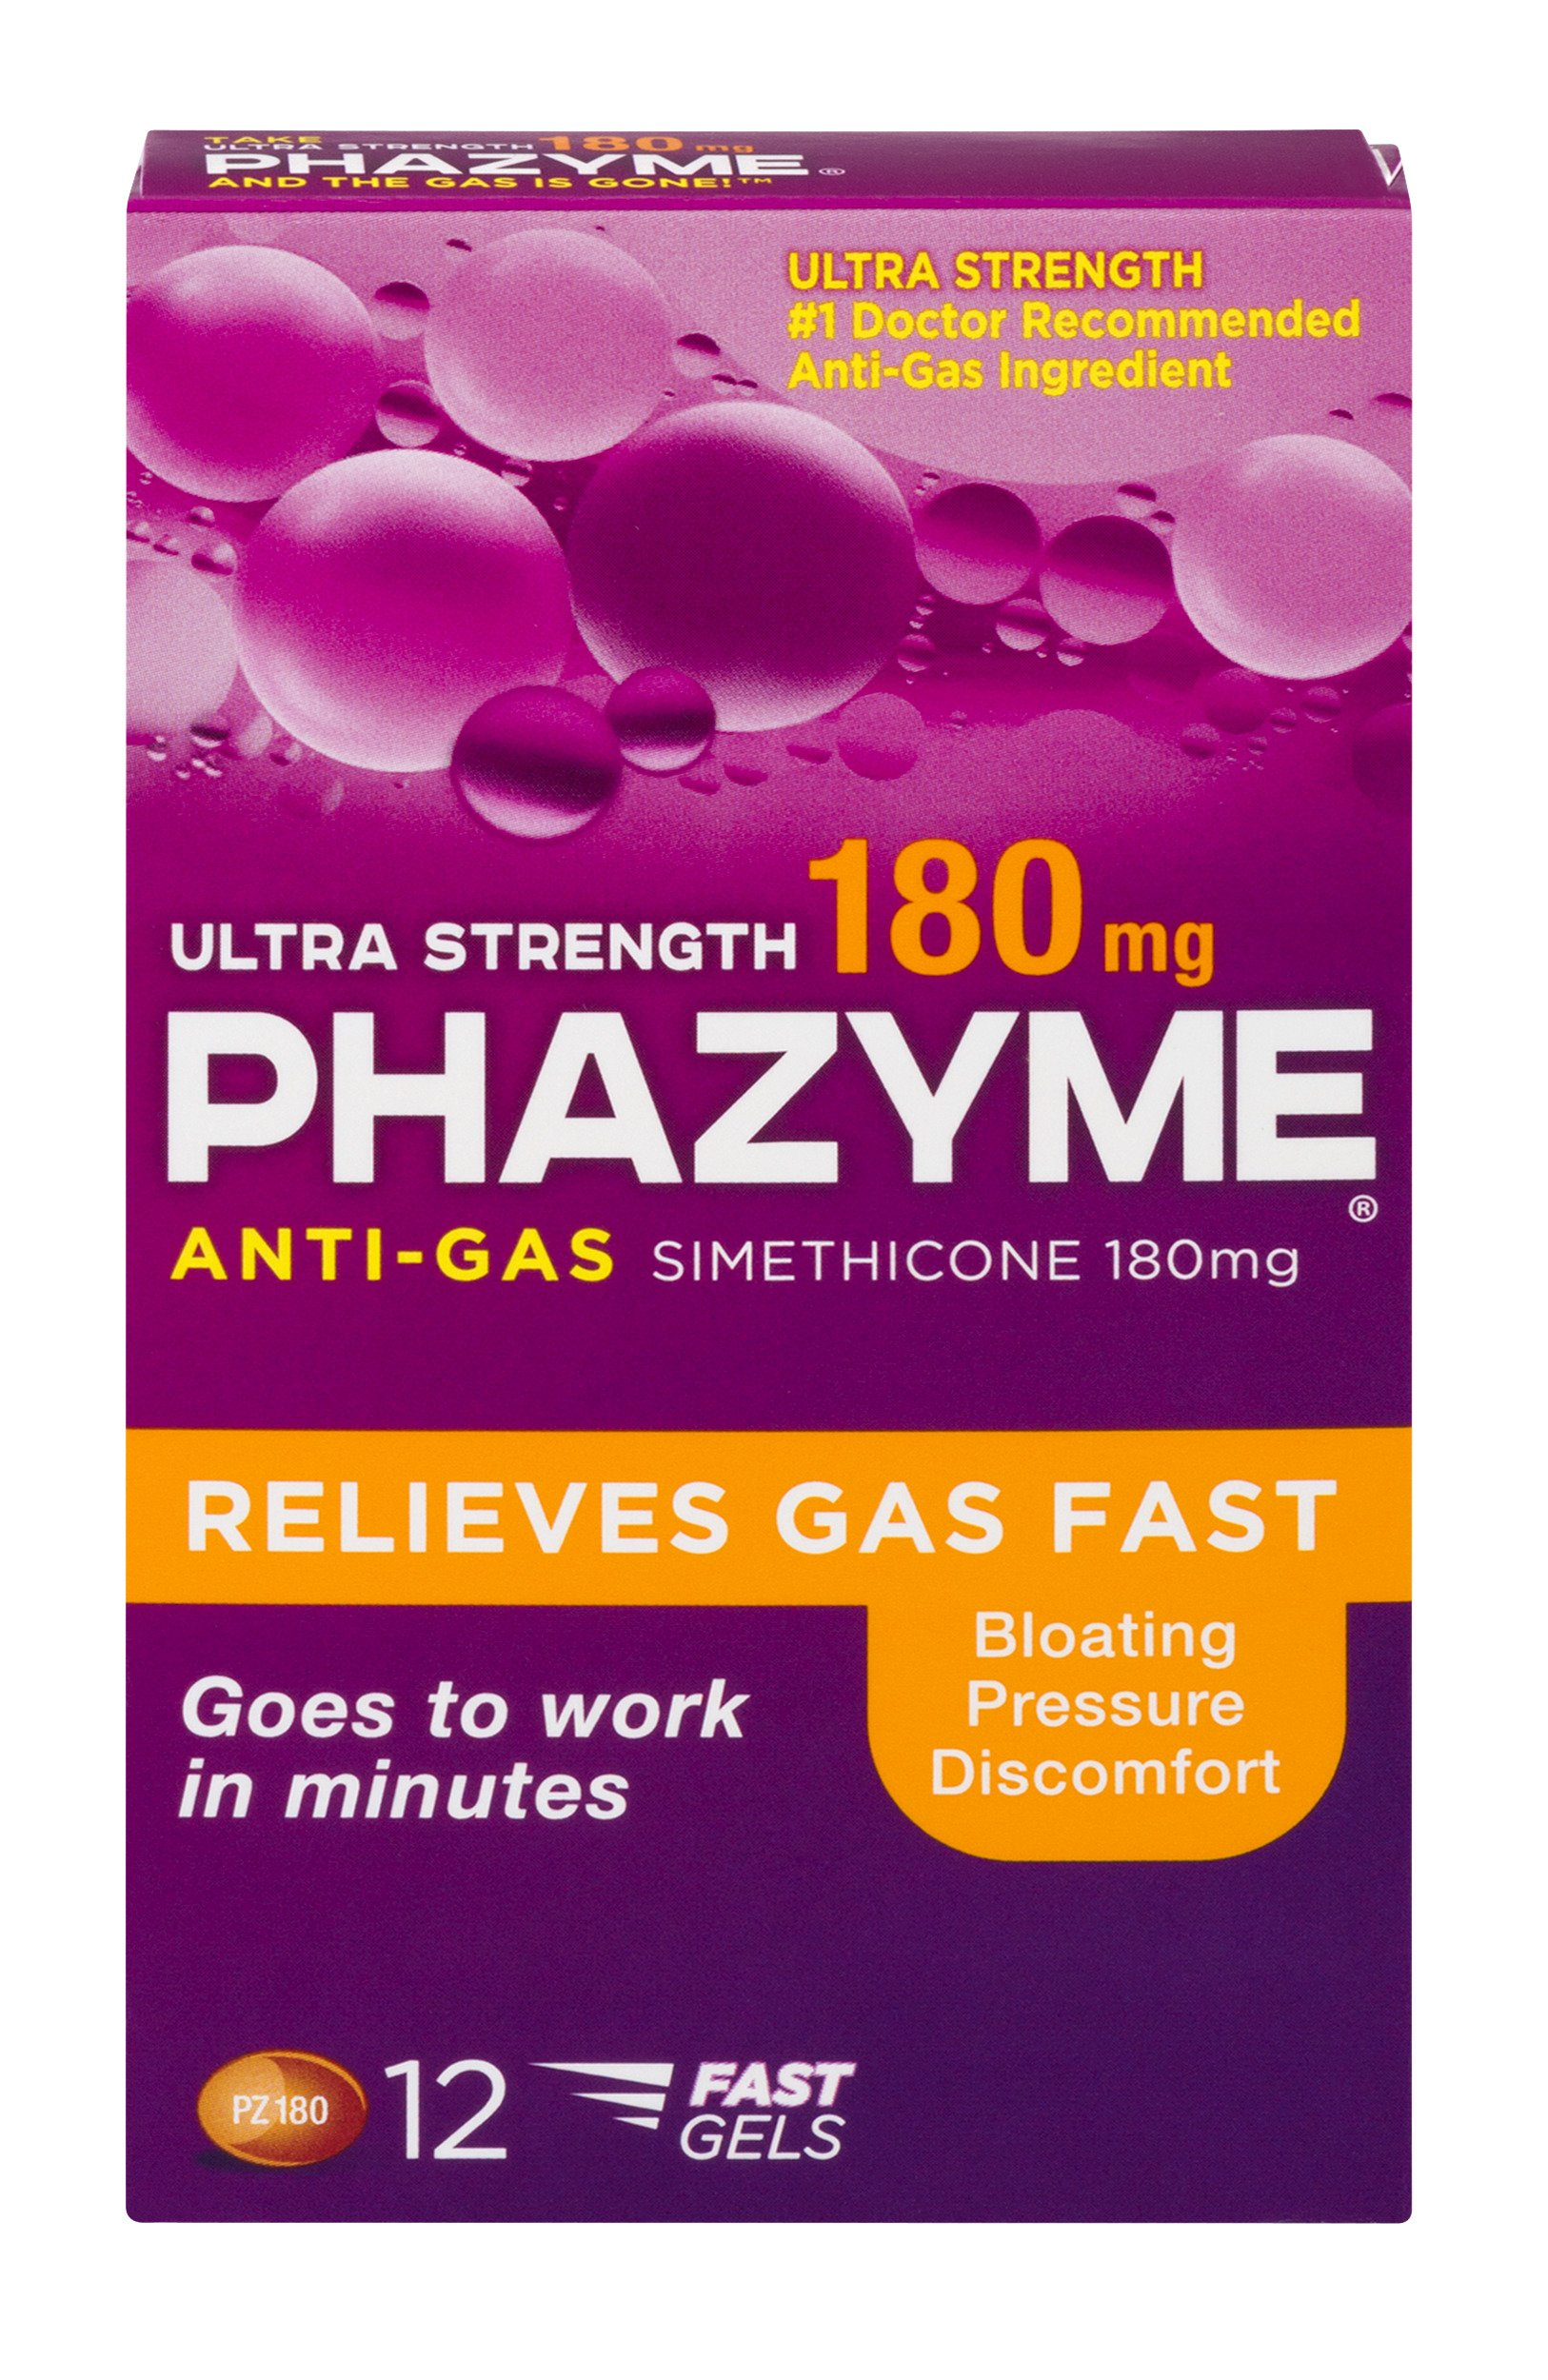 Phazyme Ultra Strength Gas and Bloating Relief | 180 Mg | 12 Fast GELS | 24 Pack by Phazyme